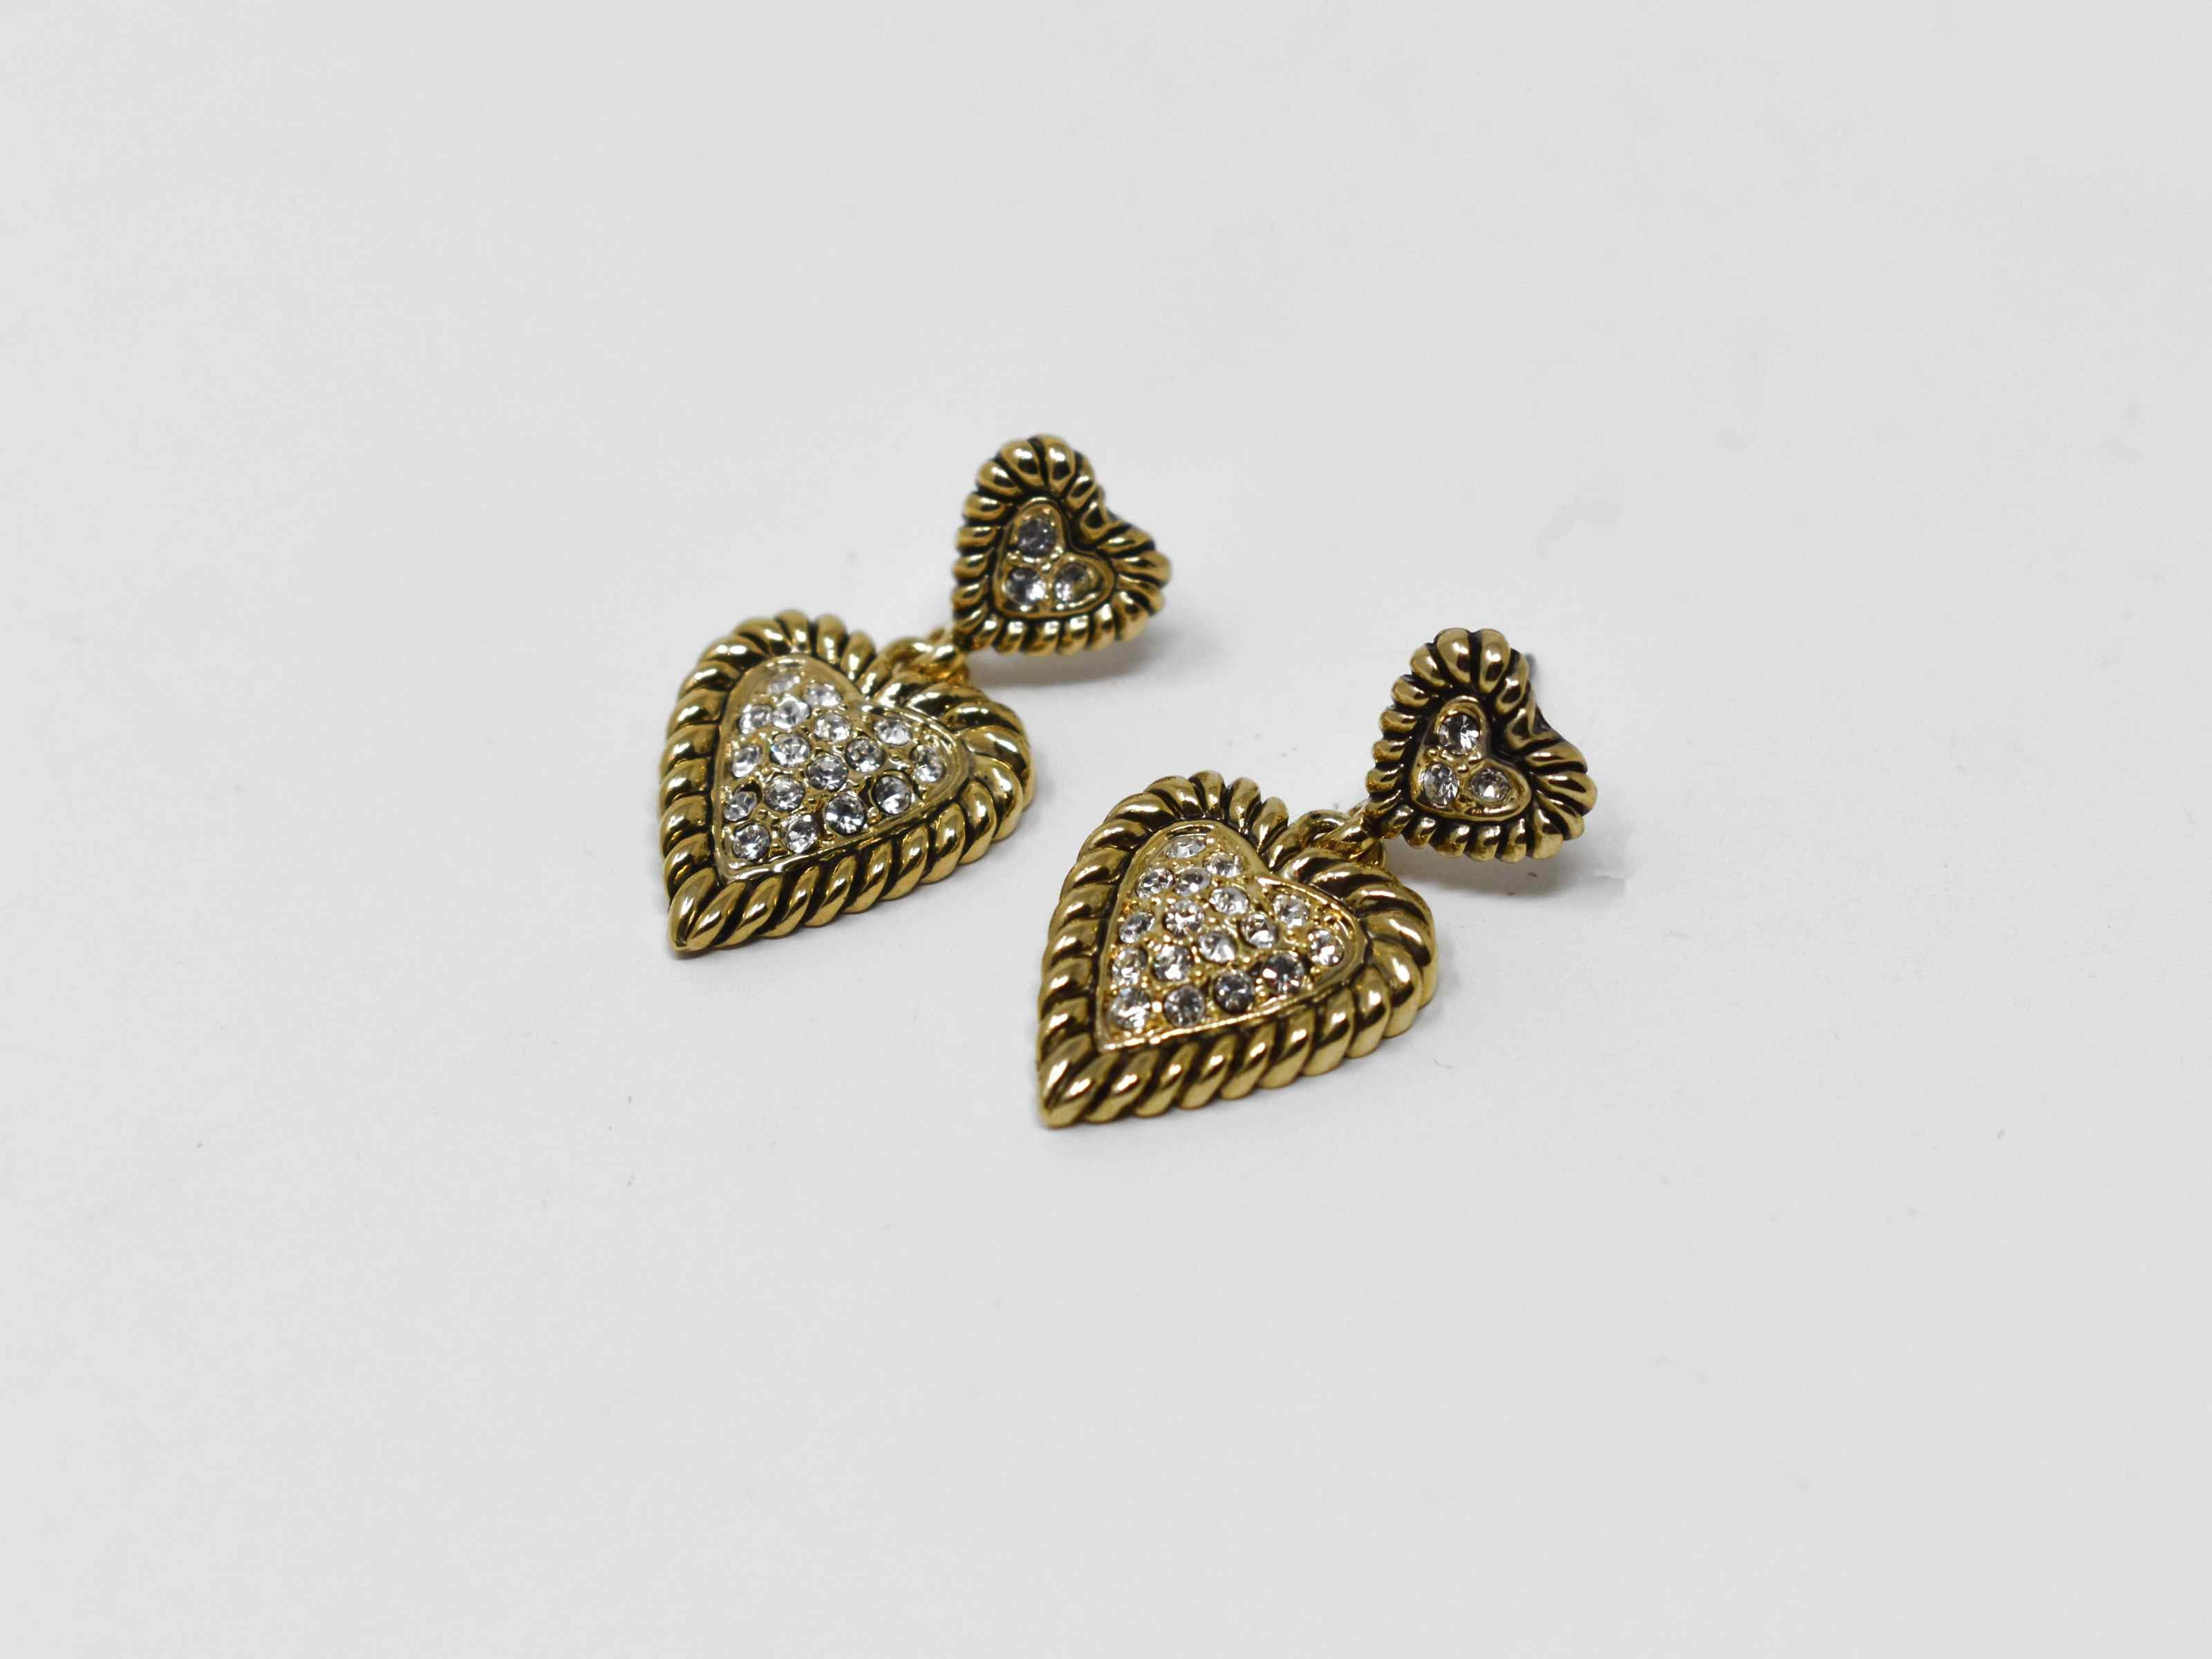 Forsythia is such a cute must have! These heart shaped designs are a gold tone adorned with stones. These earrings are 1 inch in length with a pushback clasp.